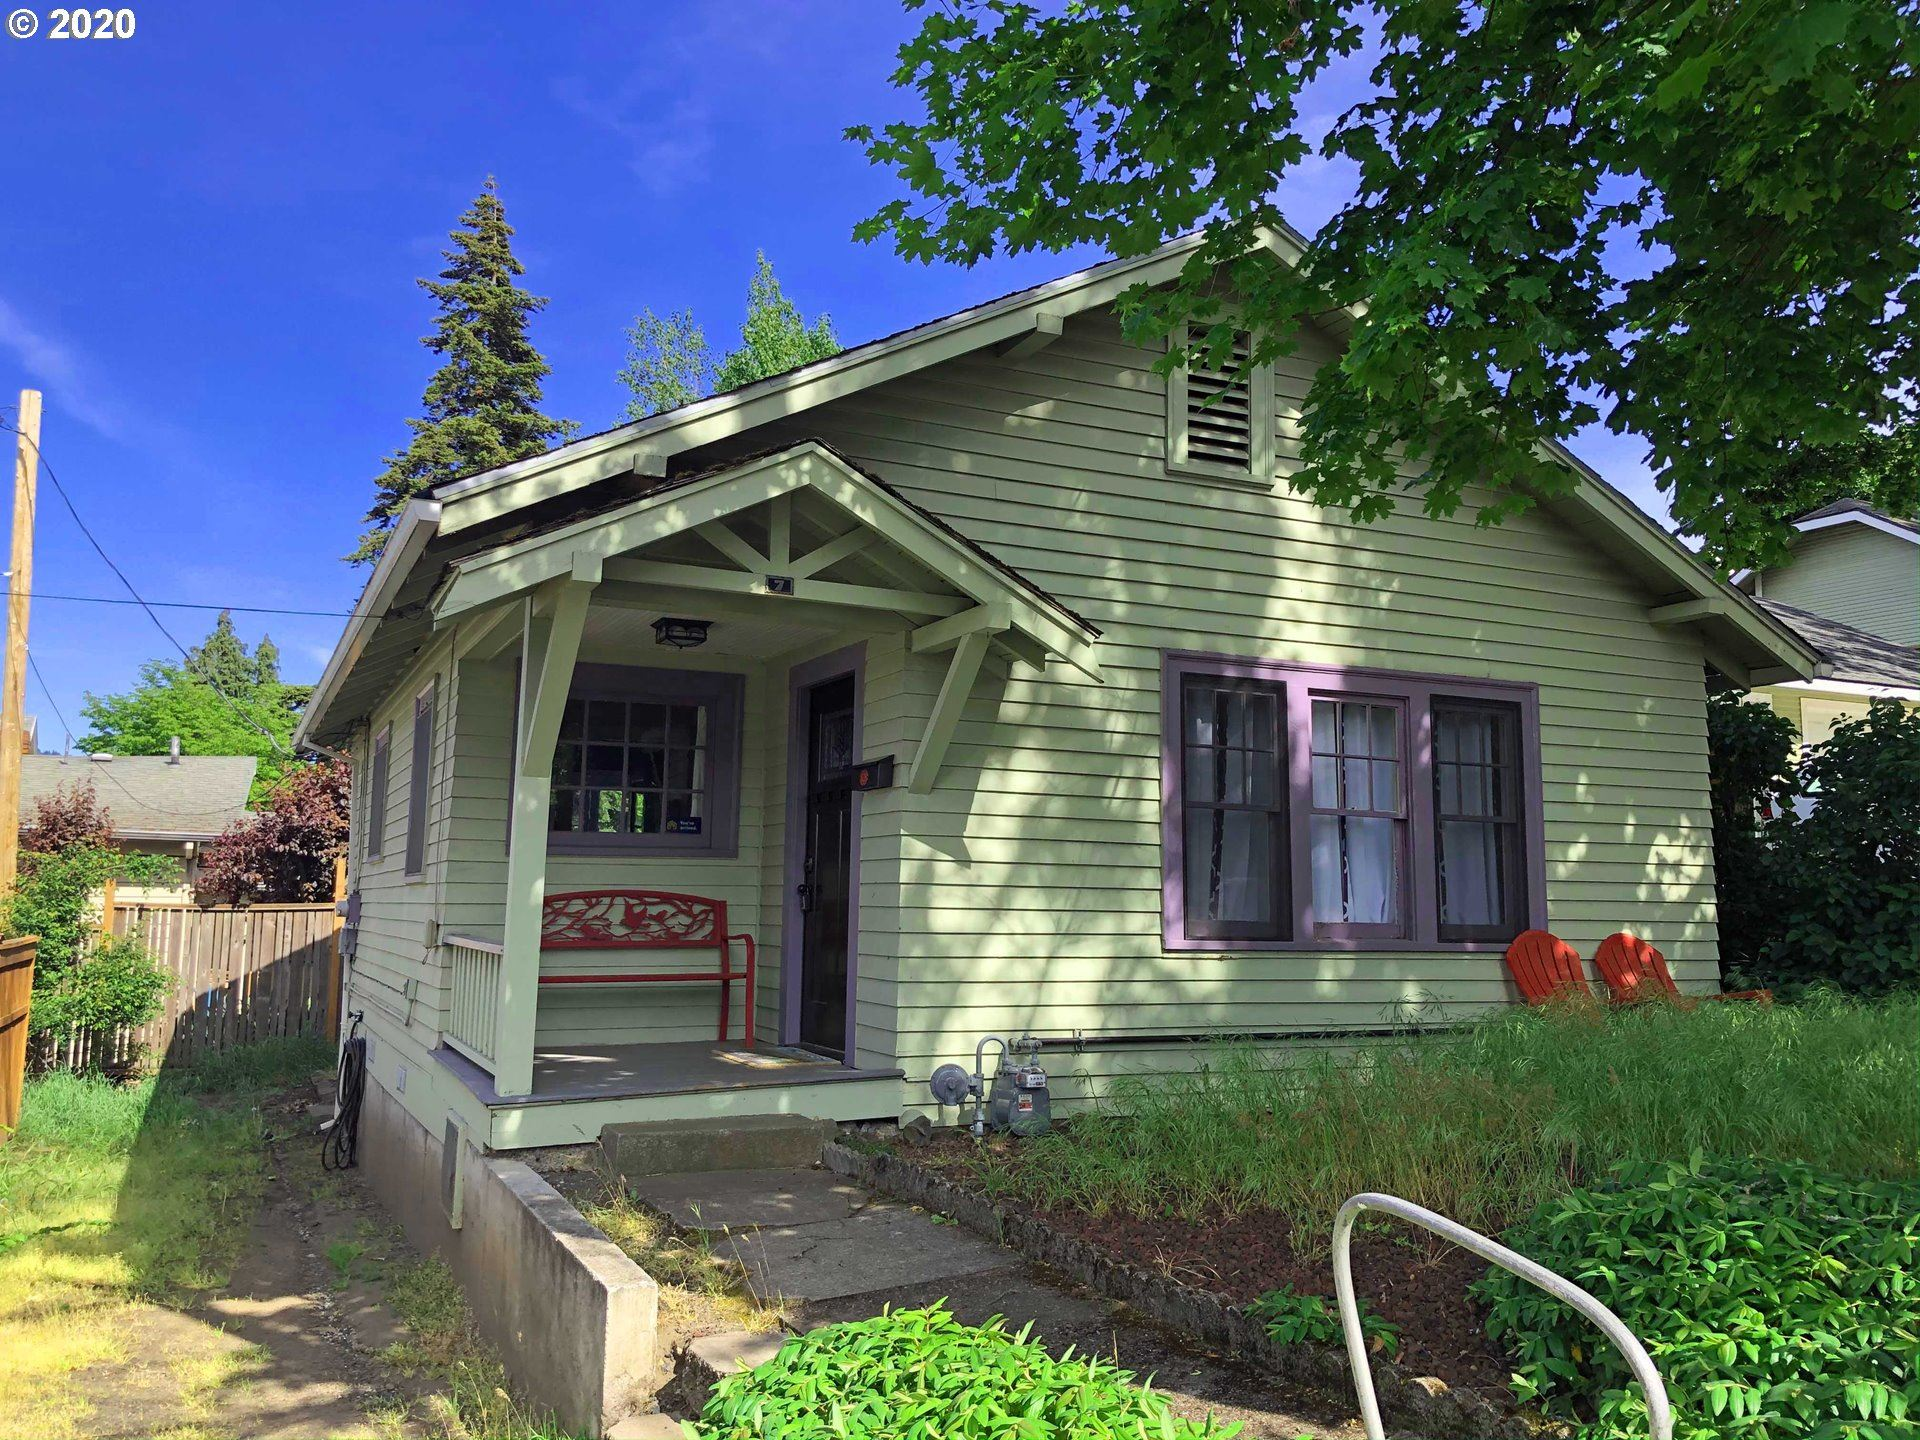 Photo of 7 10TH ST, Hood River, OR 97031 (MLS # 20238571)